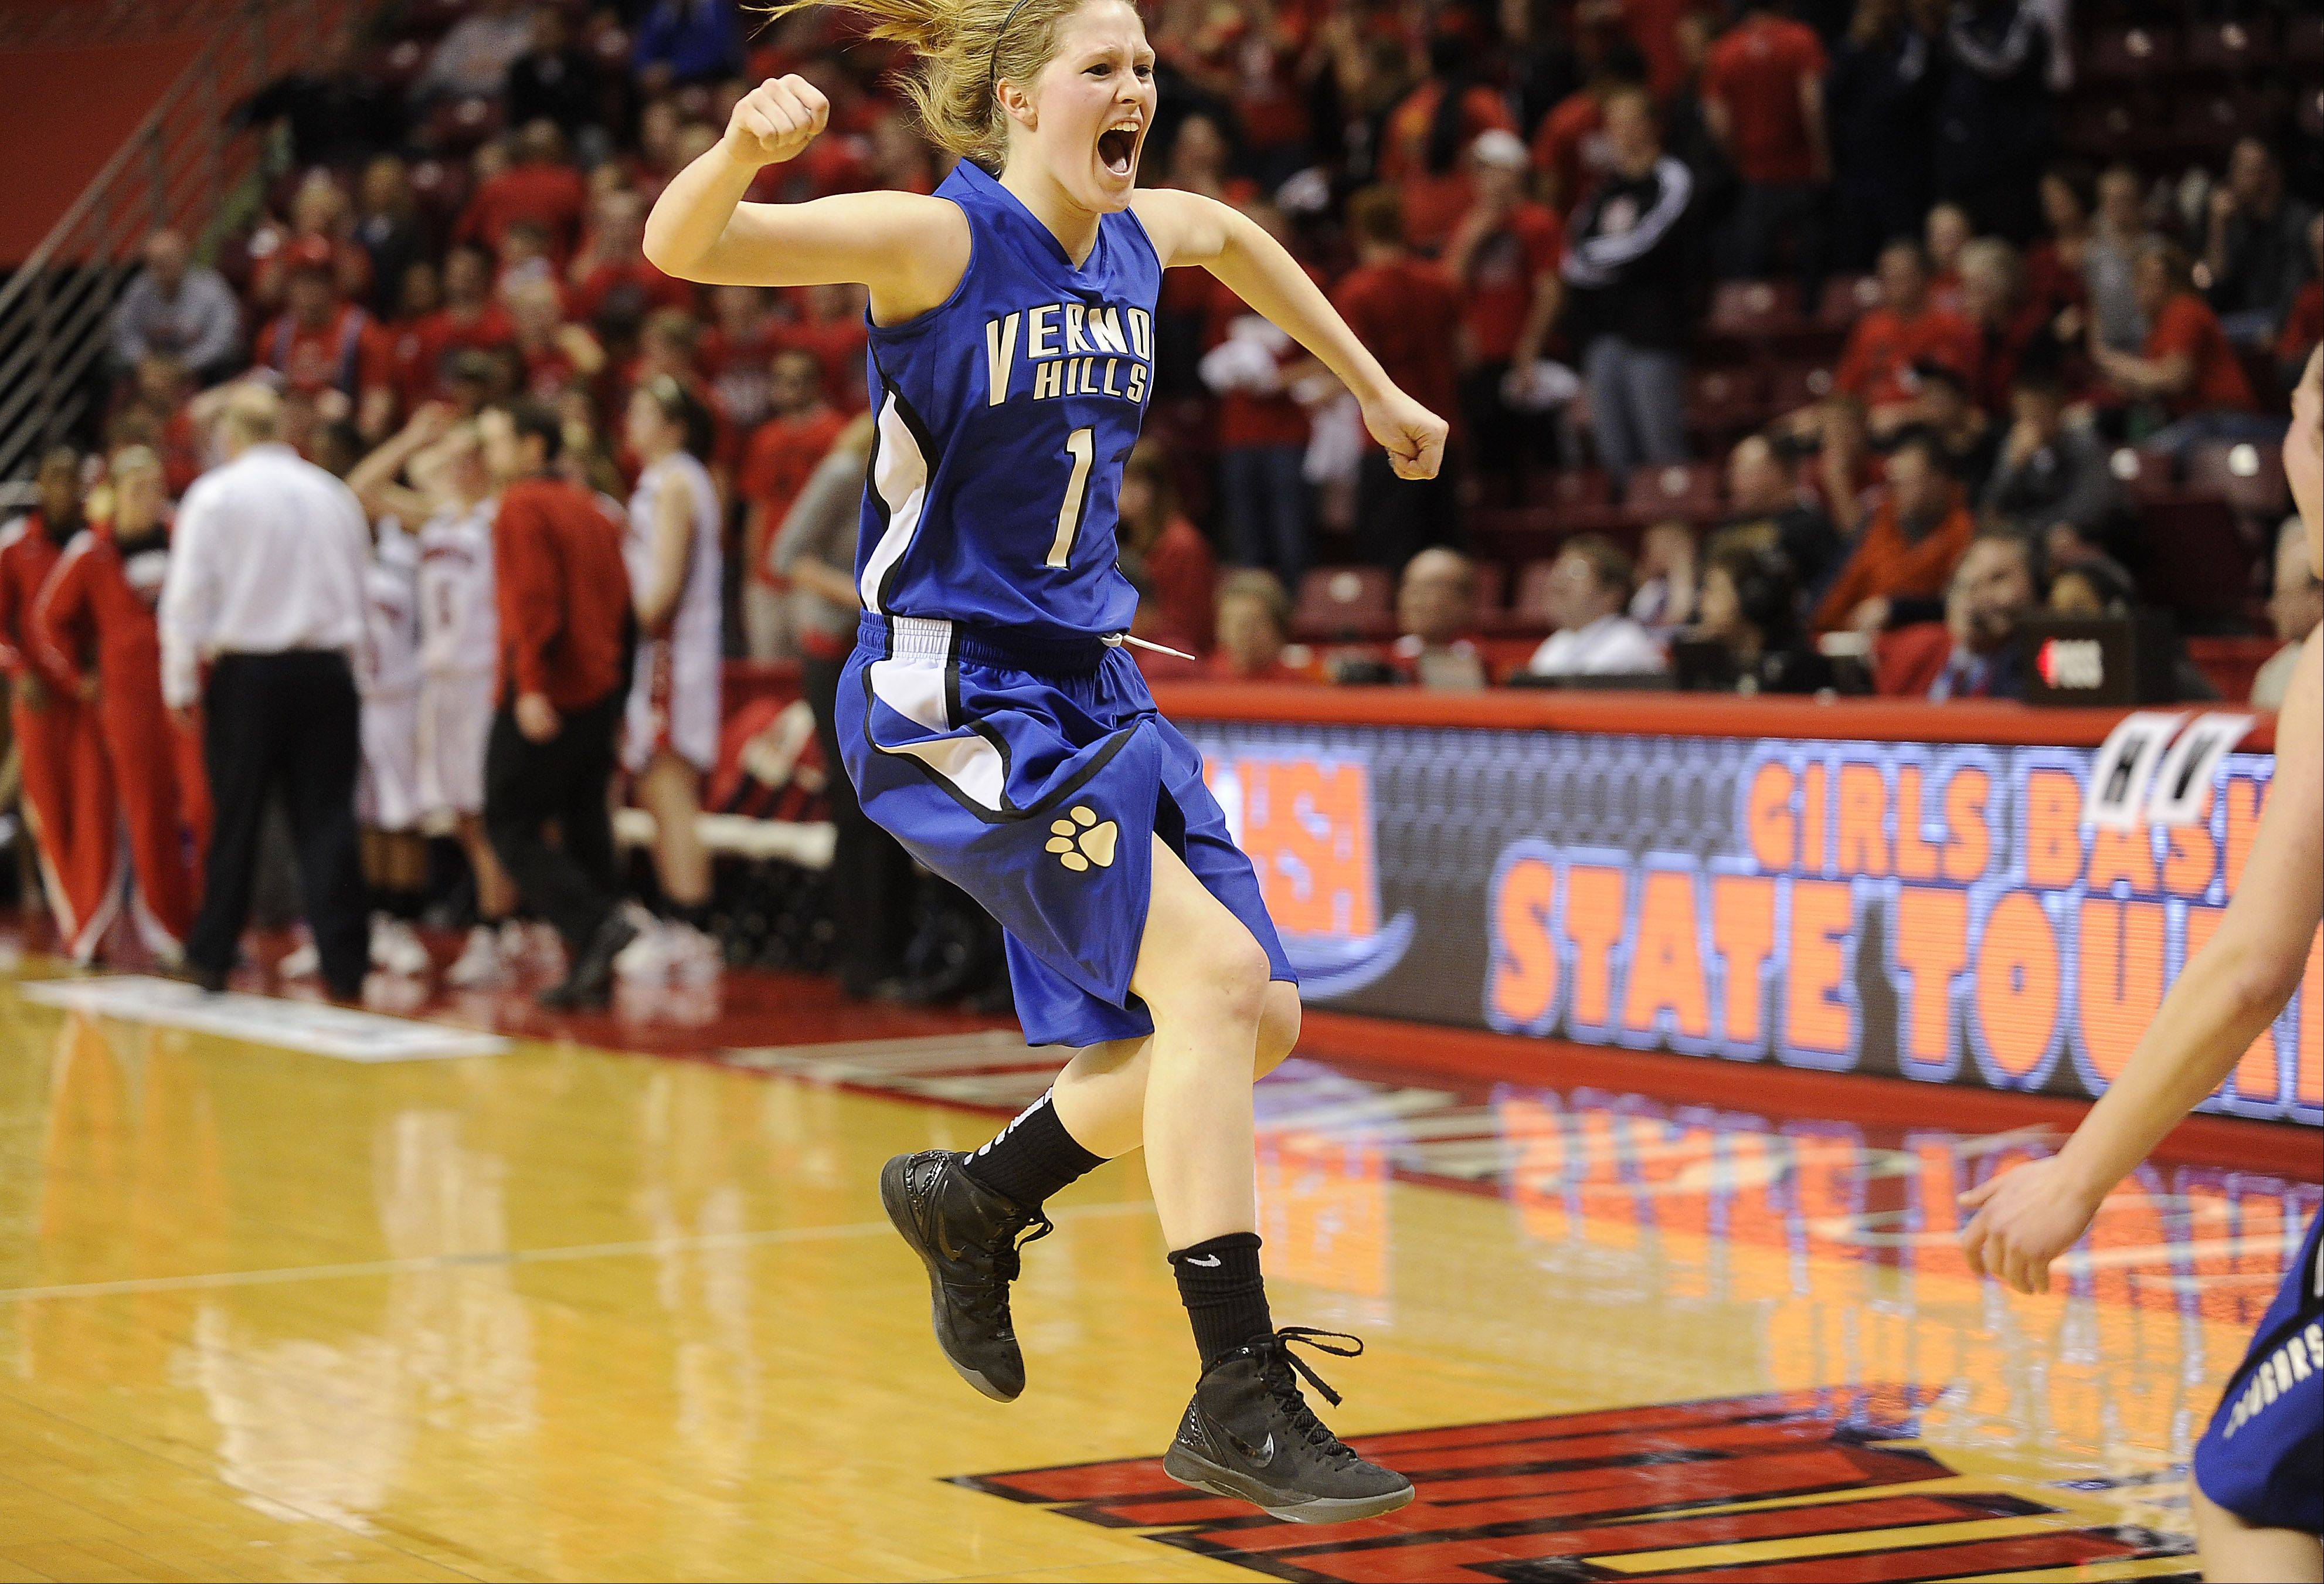 Vernon Hills' Sydney Smith jumps for joy in their victory over Springfield in the fourth quarter of play in the 2012 IHSA Class 3A girls basketball tournament in Normal, Illinois on Friday.